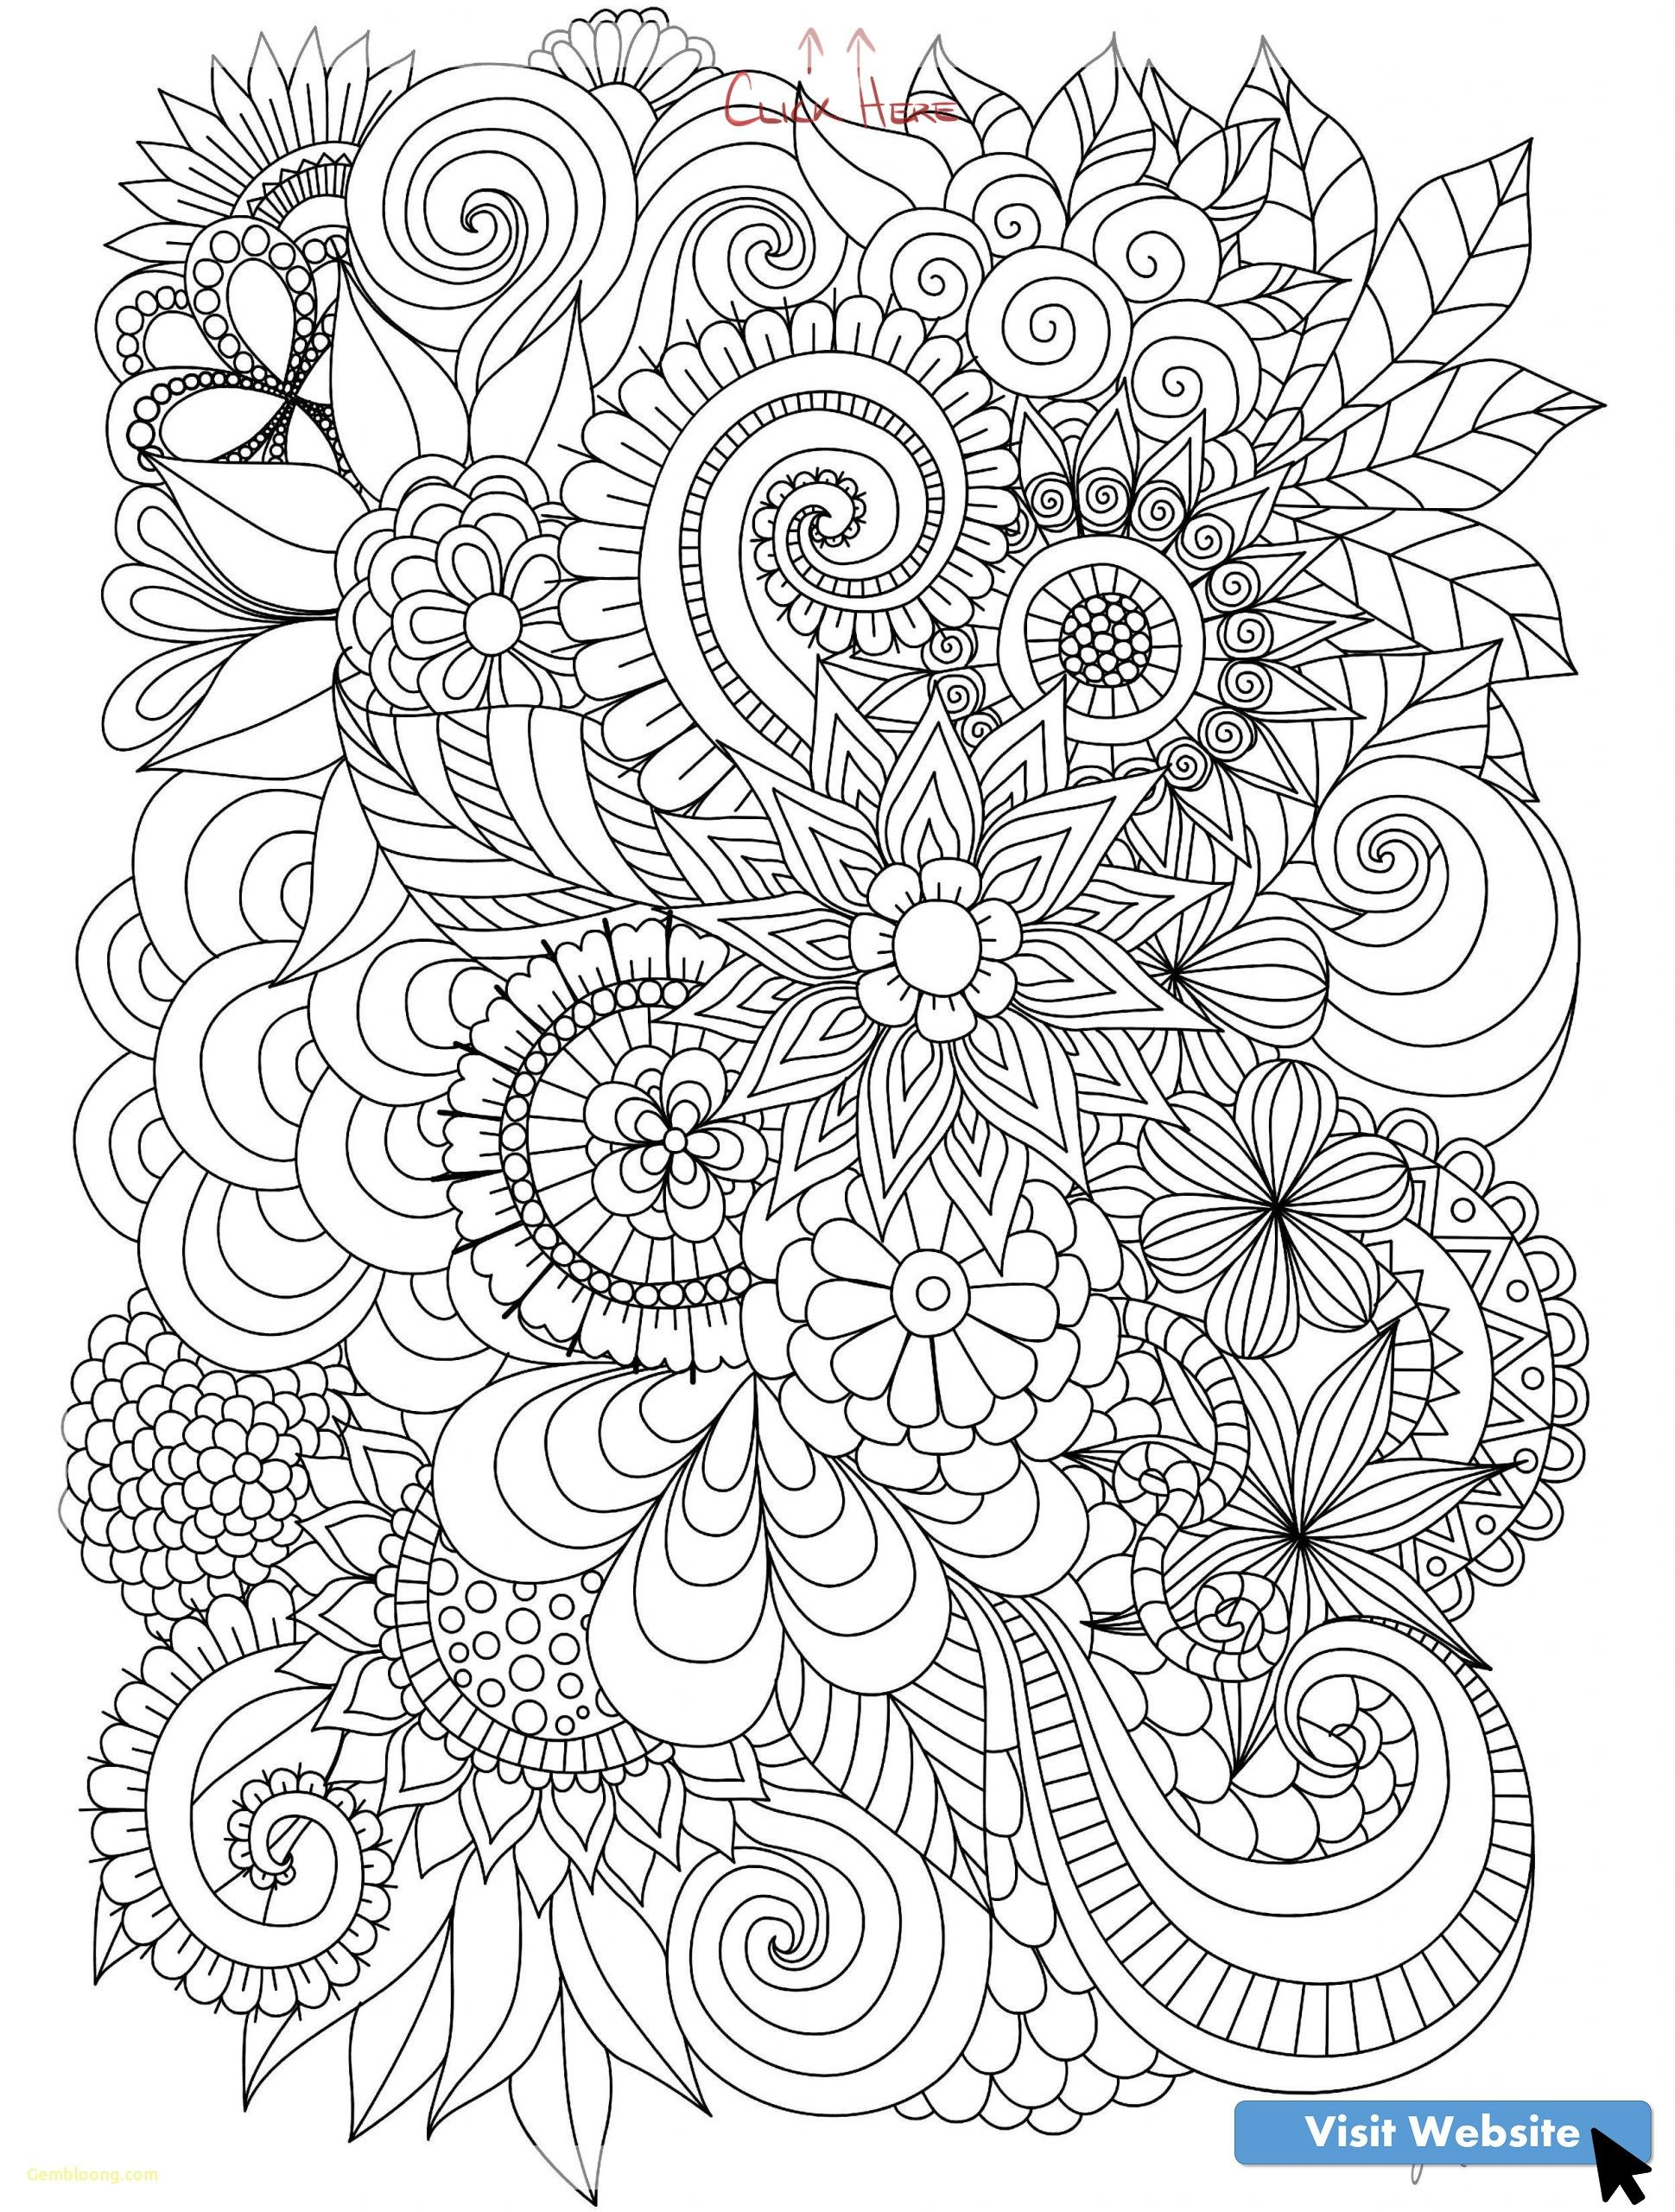 45 Good Coloring Pages For Big Kids Children Free Printable Abstract Coloring Pages Detailed Coloring Pages Mandala Coloring Pages